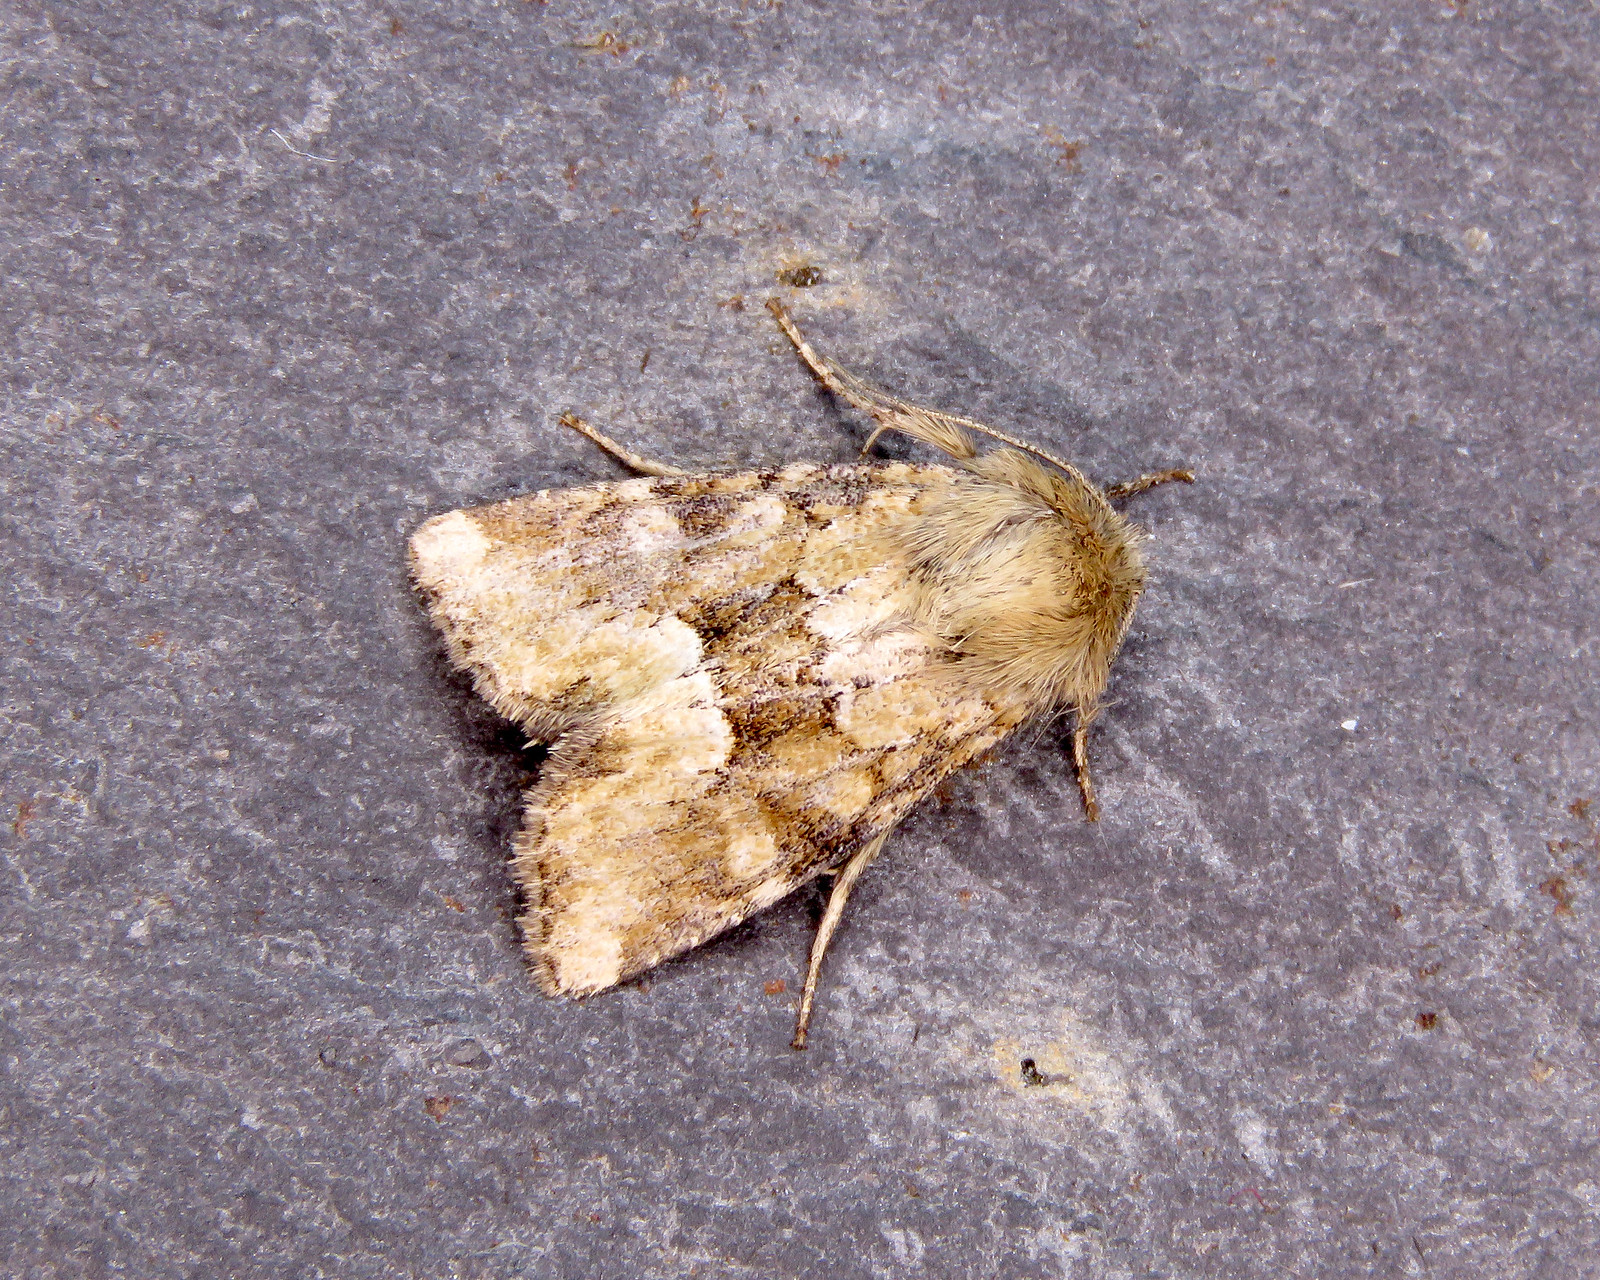 73.176Middle-barred Minor - Oligia fasciuncula